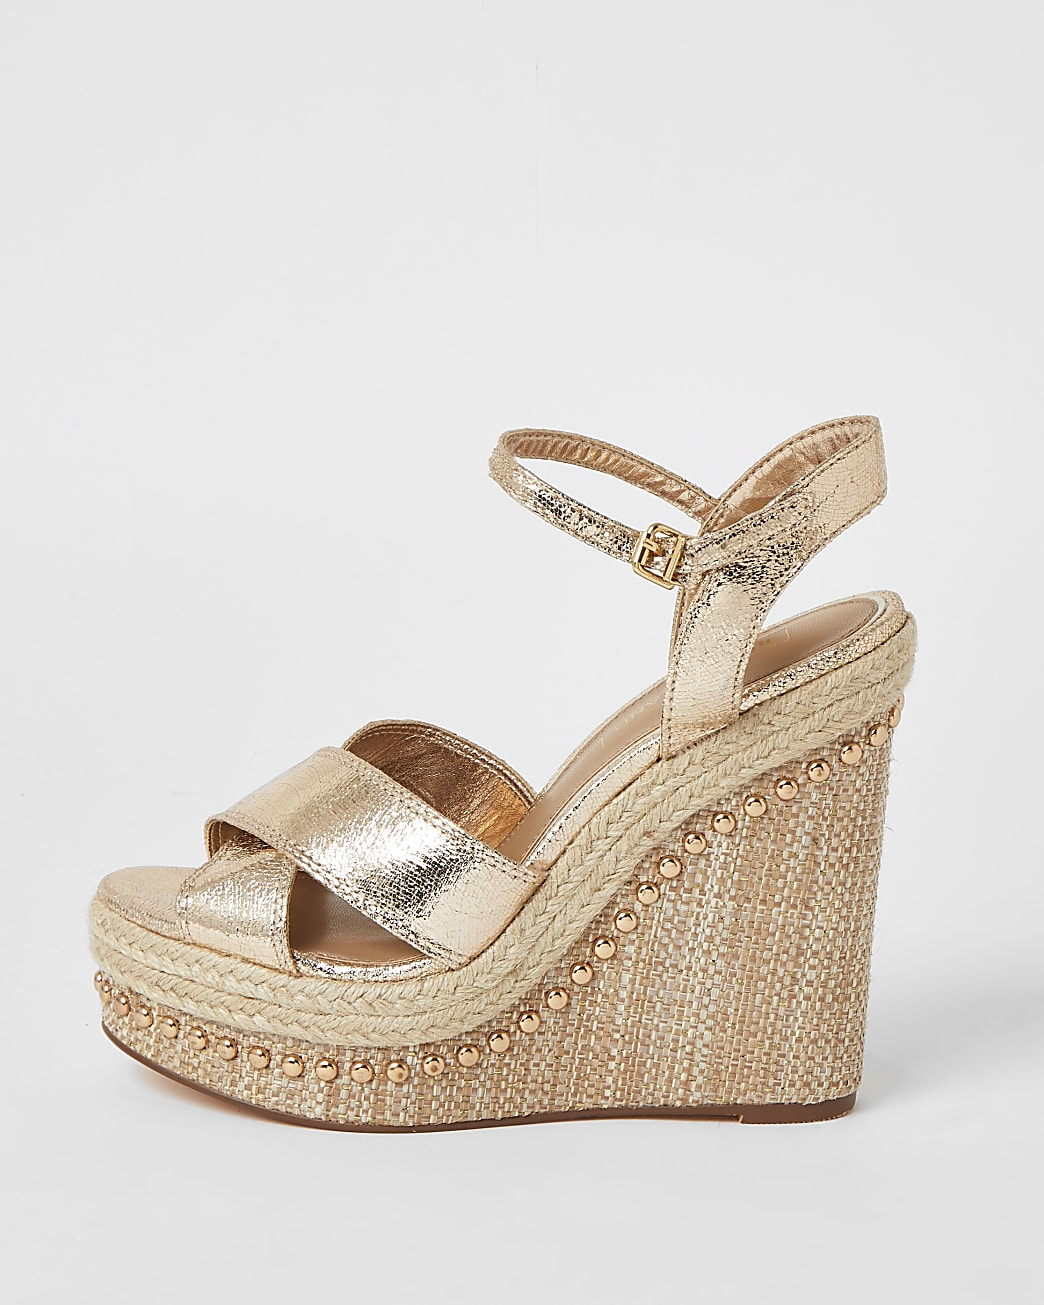 Gold embellished two part wedge sandals